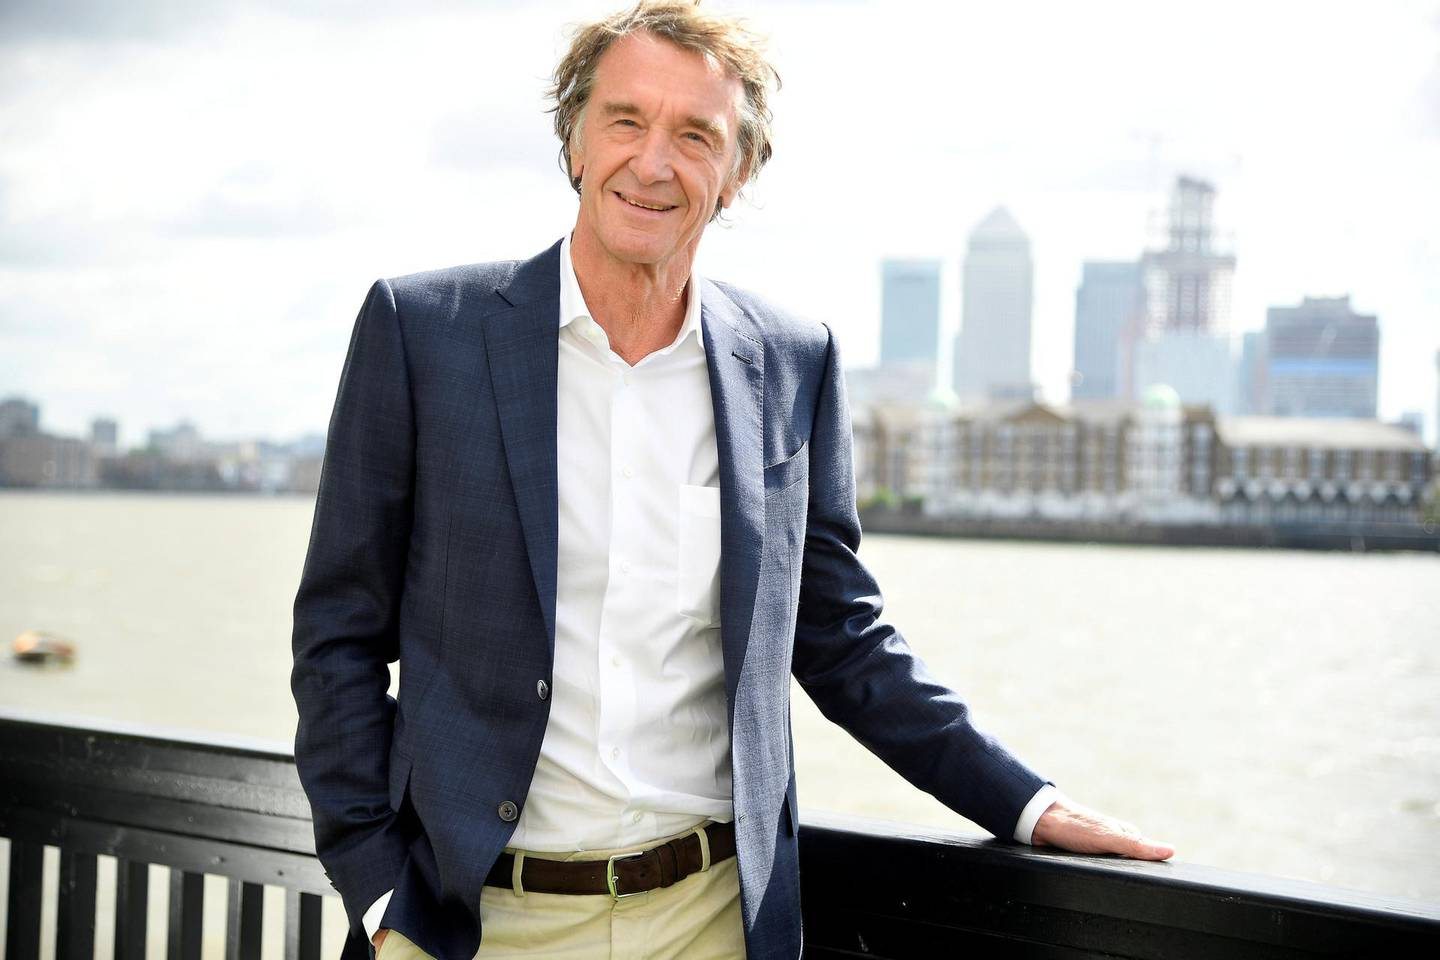 Jim Ratcliffe, CEO of British petrochemicals company INEOS, poses for a portrait with the Canary Wharf financial district seen behind, ahead of a news conference announcing the launch of a British America's Cup sailing team in London, Britain, April 26, 2018. REUTERS/Toby Melville